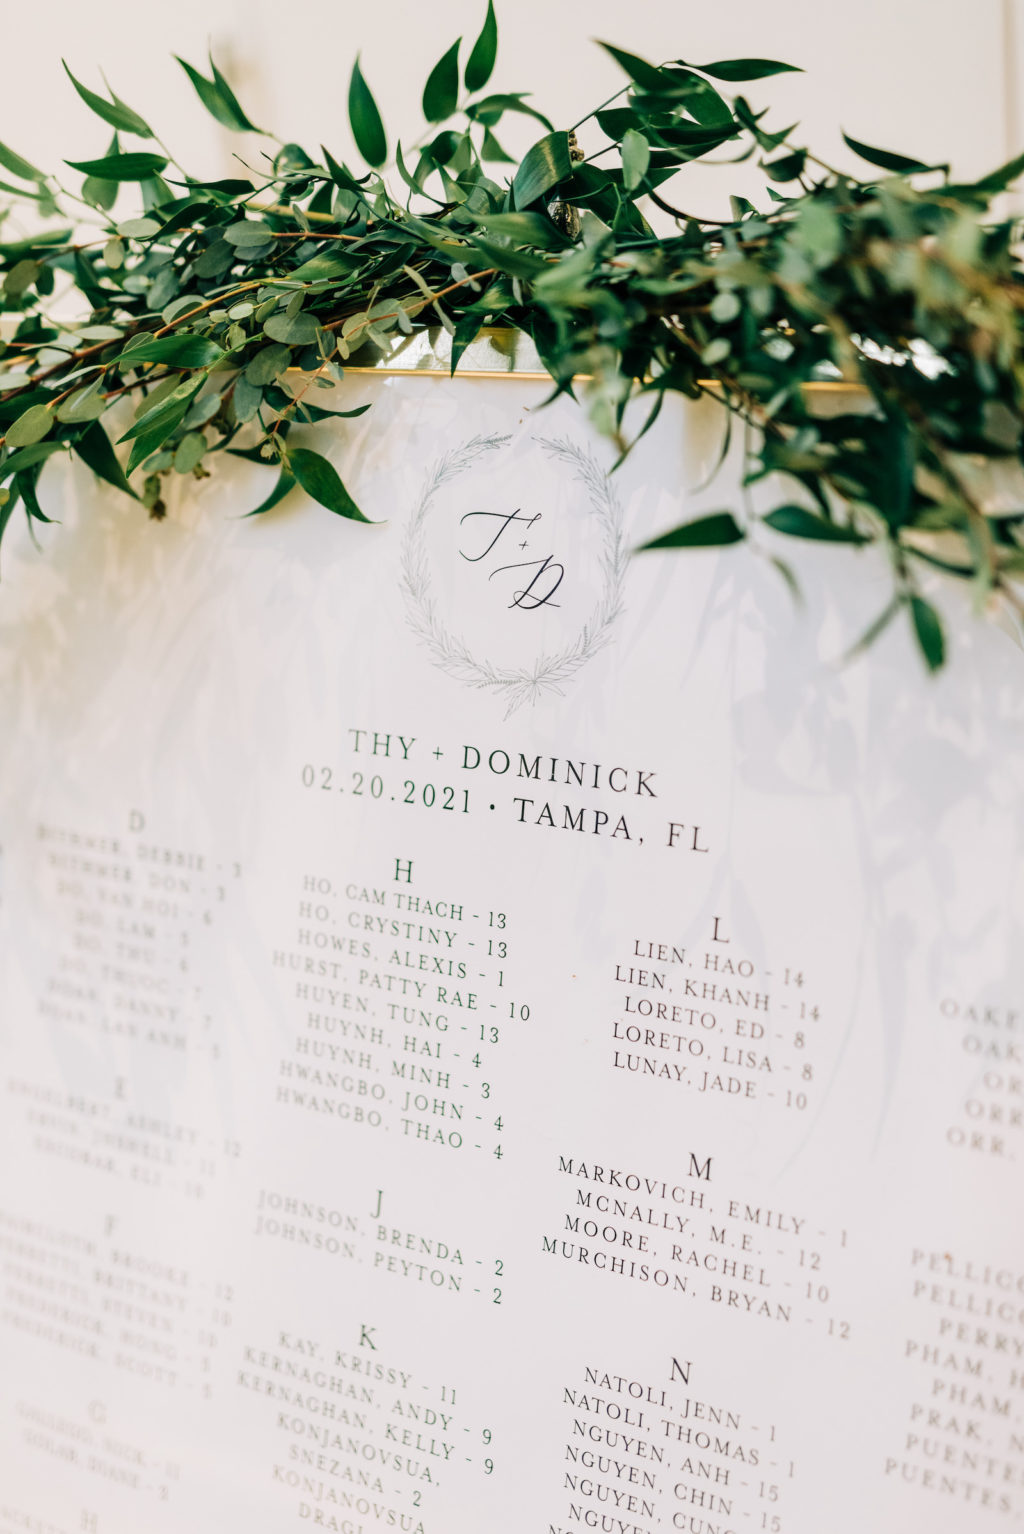 Classic Garden Wedding Reception Decor, White Seating Chart with Couples Monogram, Greenery Garland   Tampa Bay Wedding Florist Monarch Events and Design   Wedding Rentals Kate Ryan Event Rentals